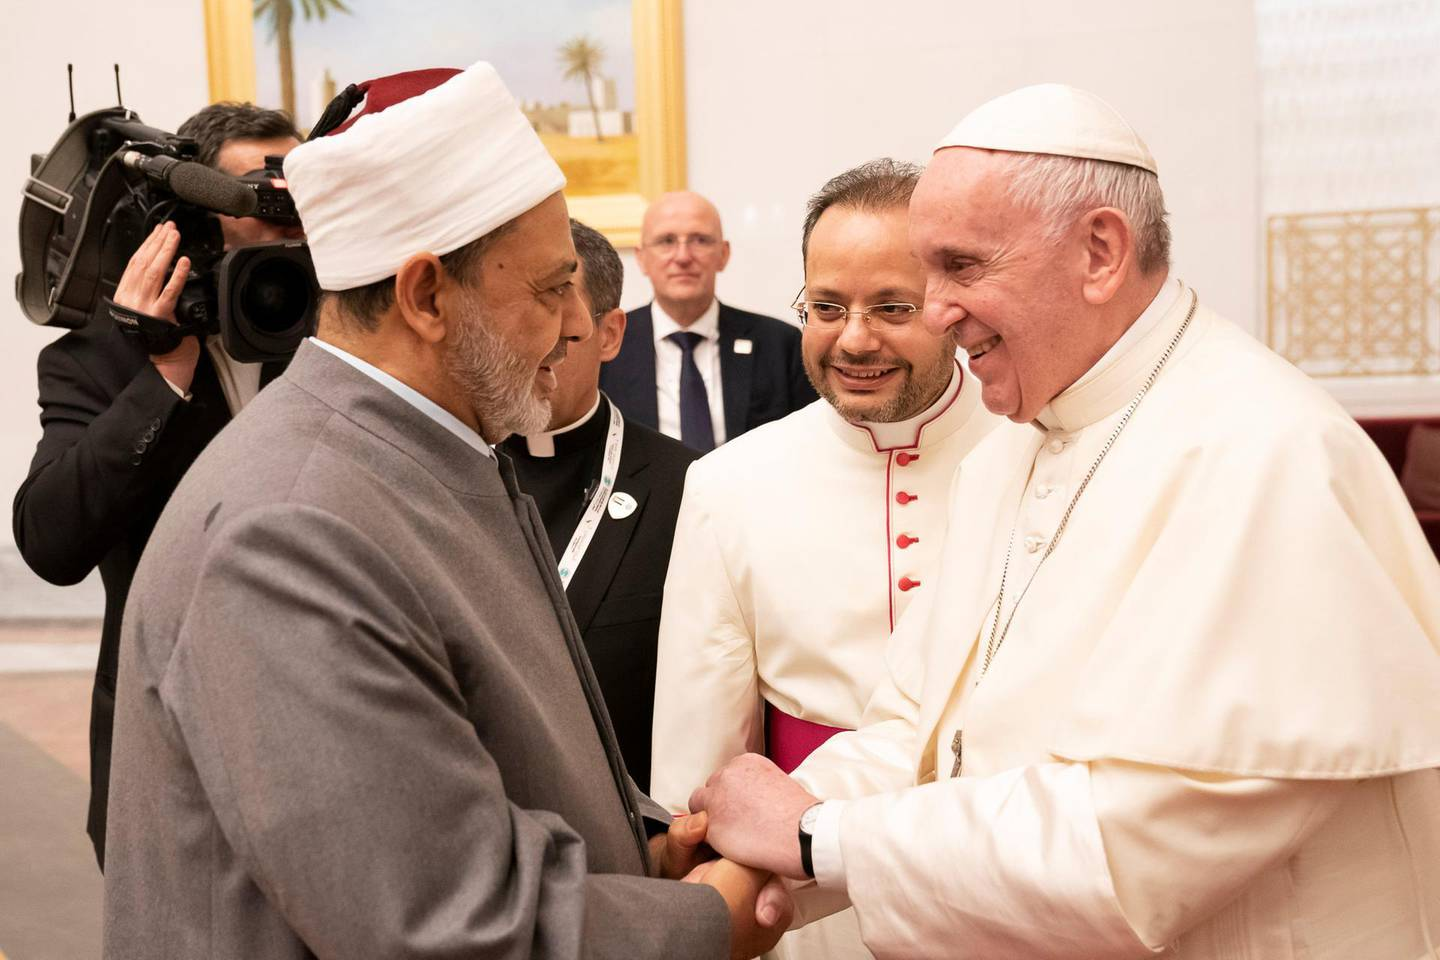 Pope Francis, Head of the Catholic Church shakes hands with Sheikh Ahmed Mohamed el-Tayeb, Egyptian Imam of al-Azhar Mosque, upon his arrival at Abu Dhabi International airport in Abu Dhabi, United Arab Emirates, February 3, 2019. WAM/Handout via REUTERS ATTENTION EDITORS - THIS PICTURE WAS PROVIDED BY A THIRD PARTY